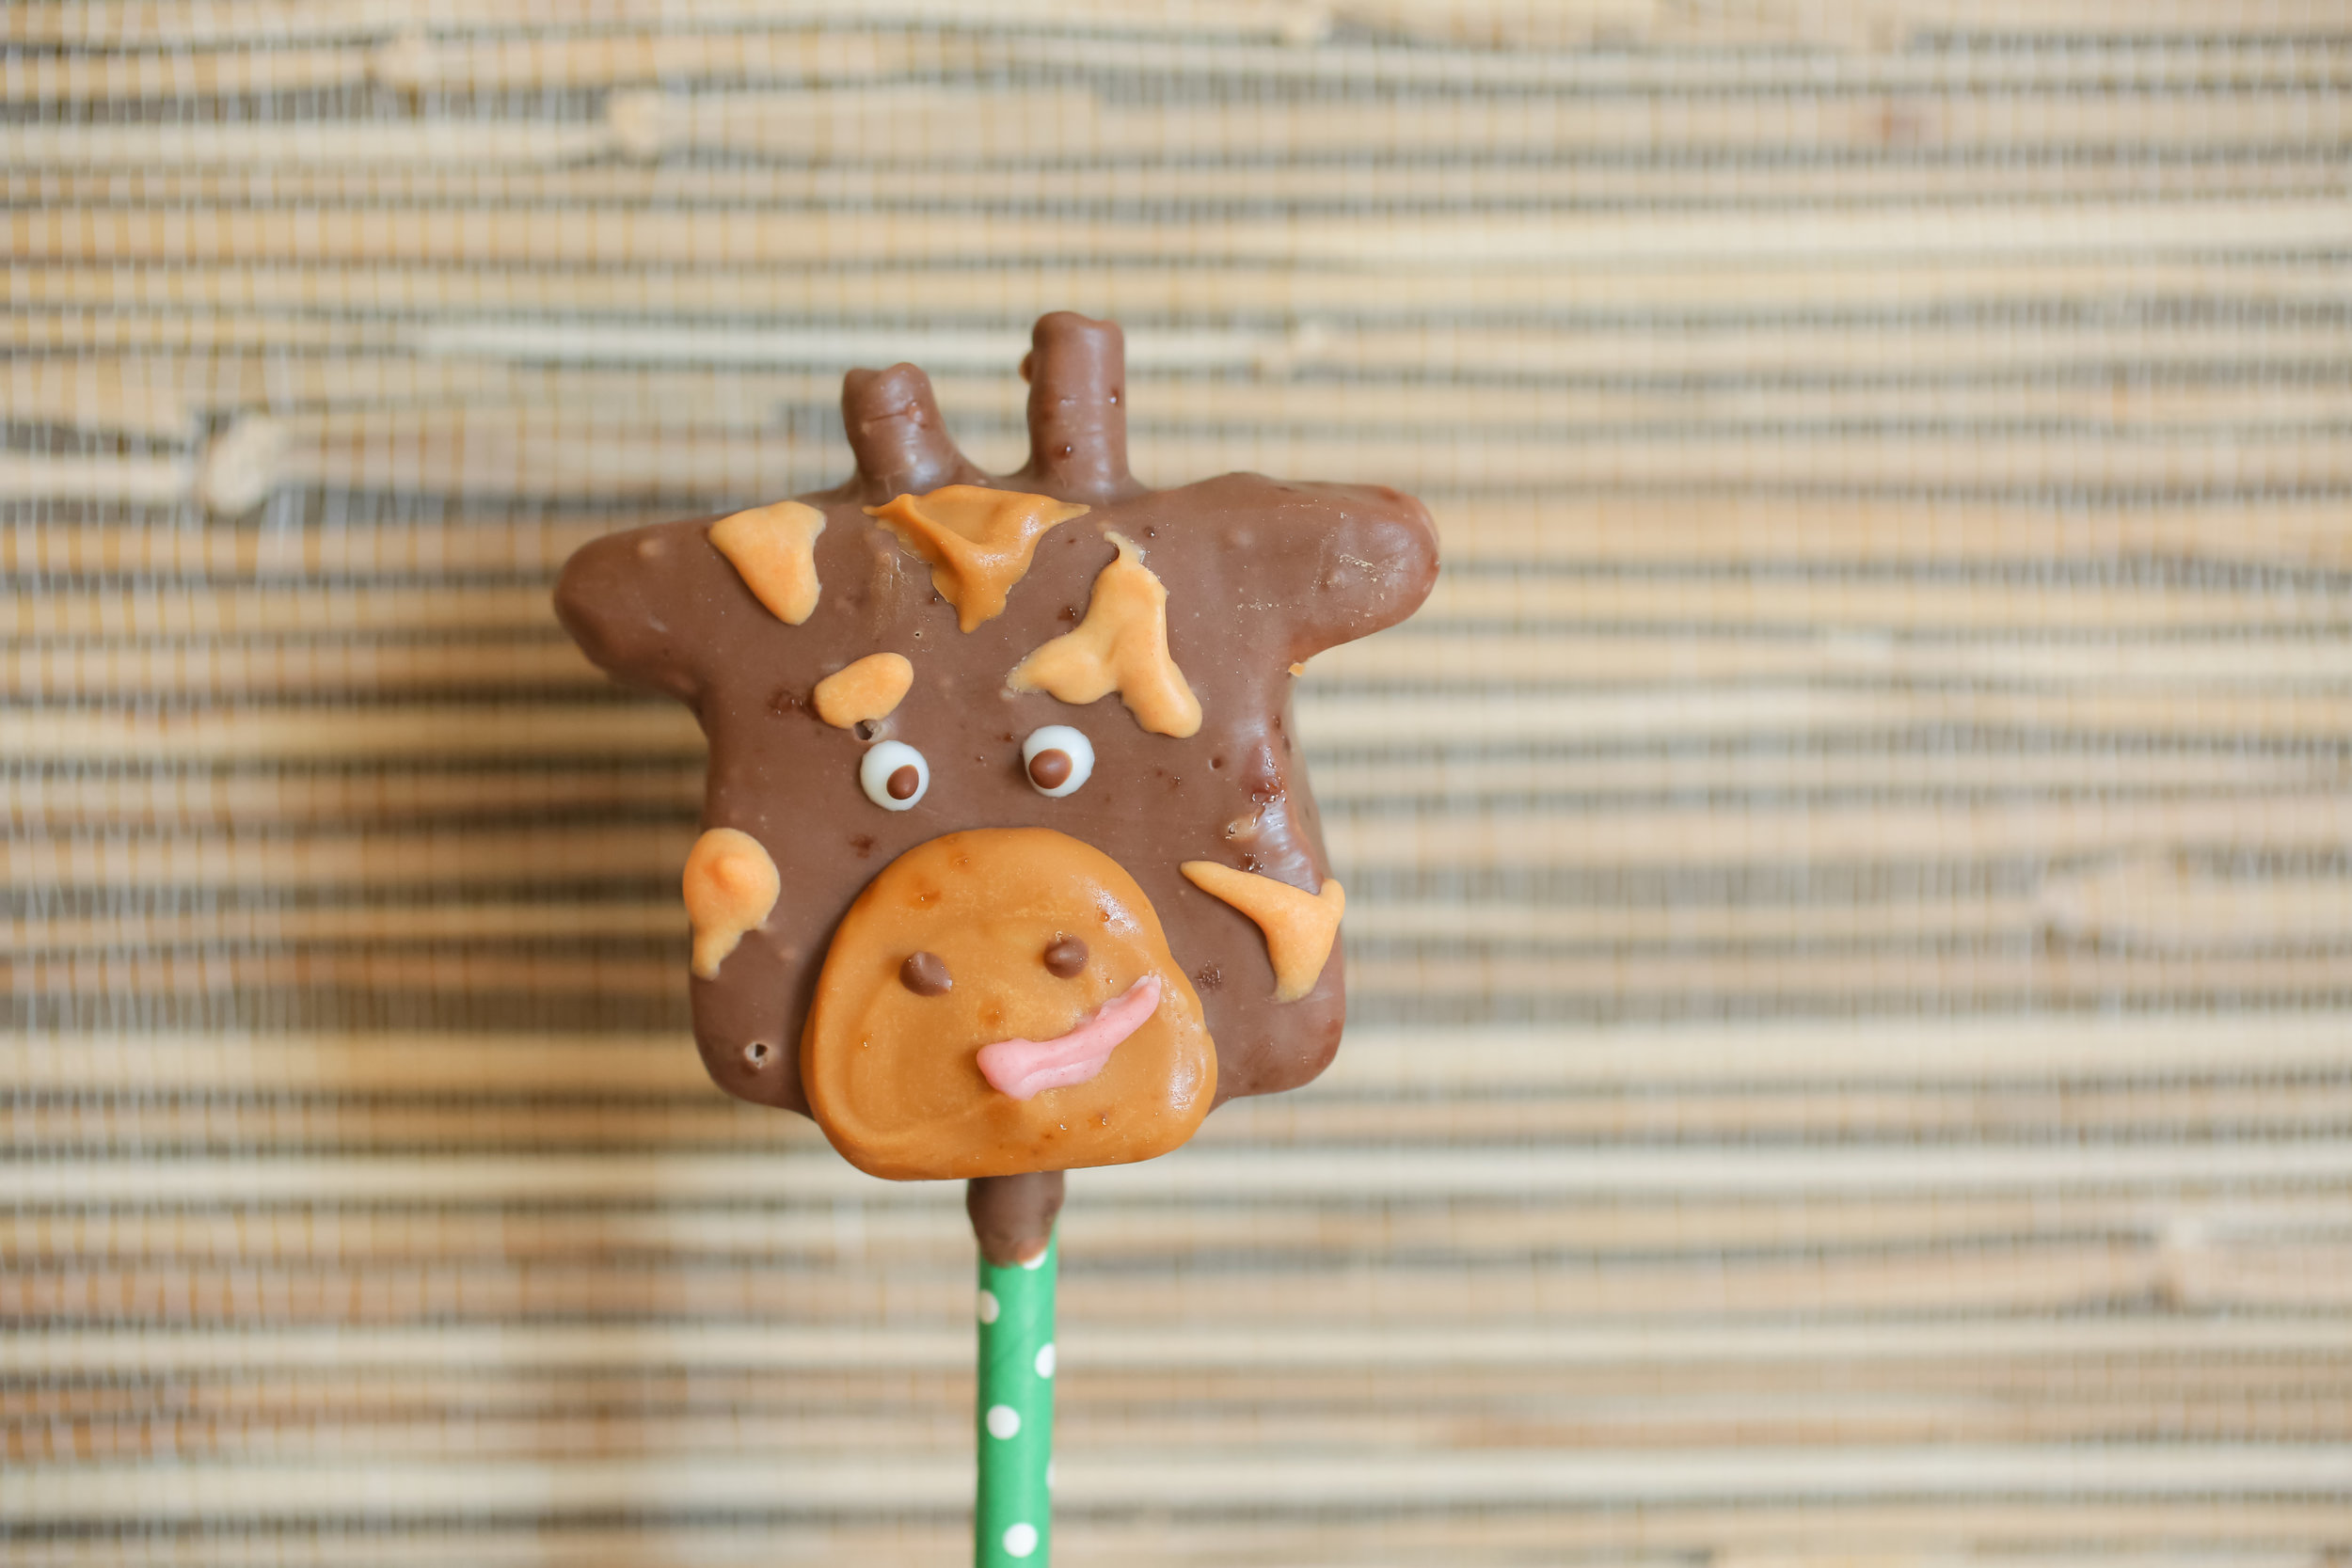 The custom giraffe marshmallow pops, and the most adorable cake you've ever seen, were also on the dessert menu.